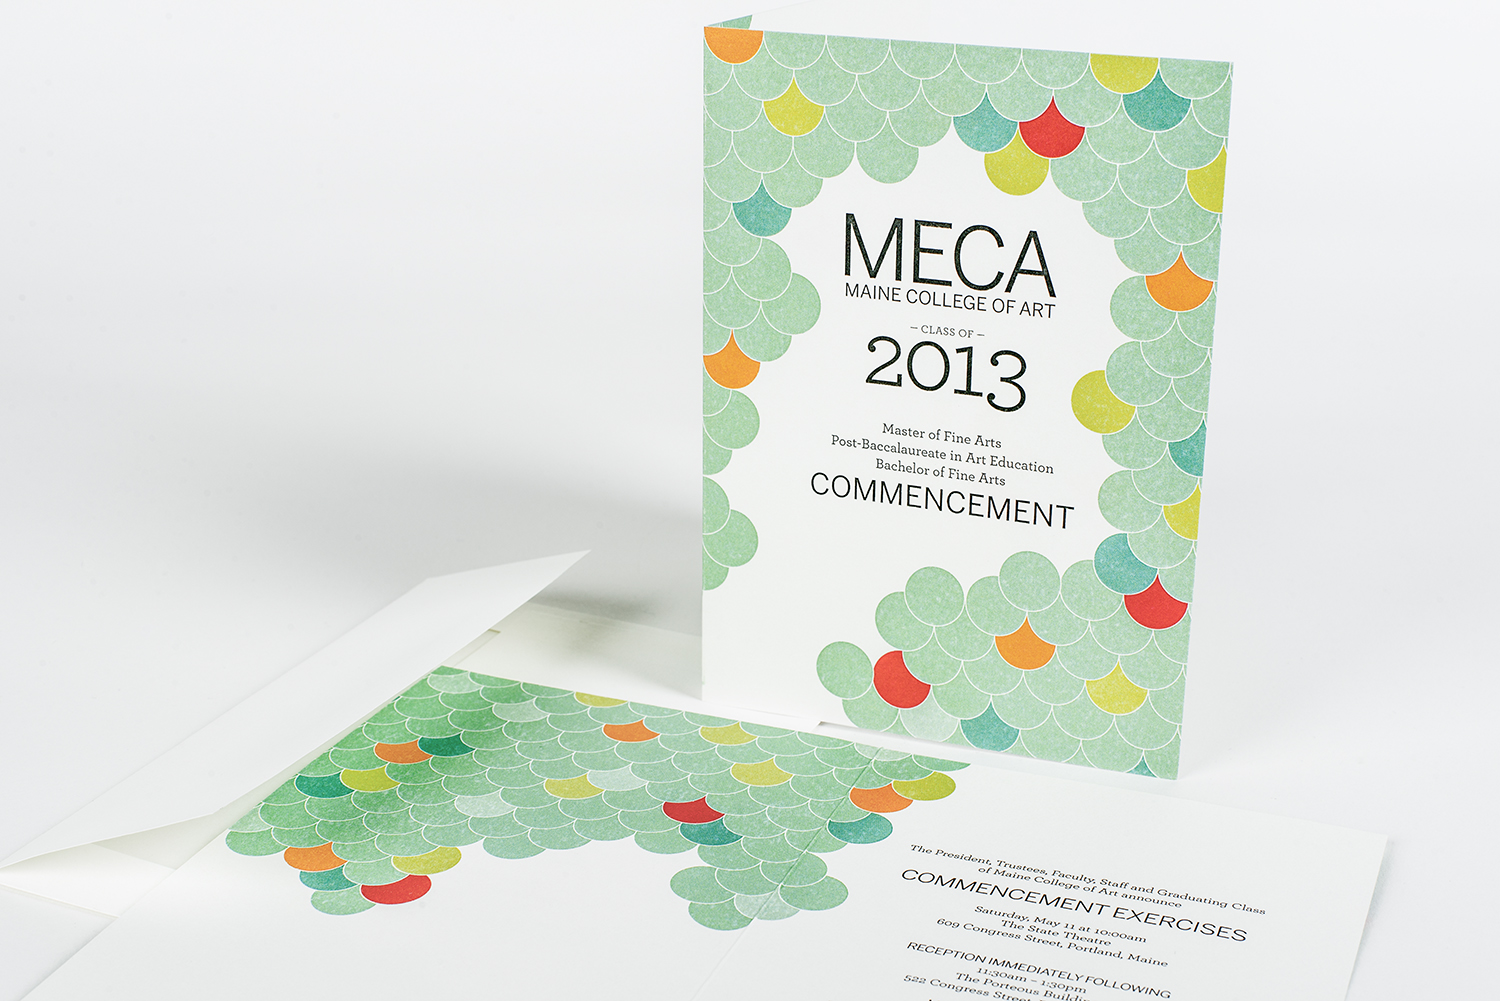 MECA's Commencement Invite + Program 2013